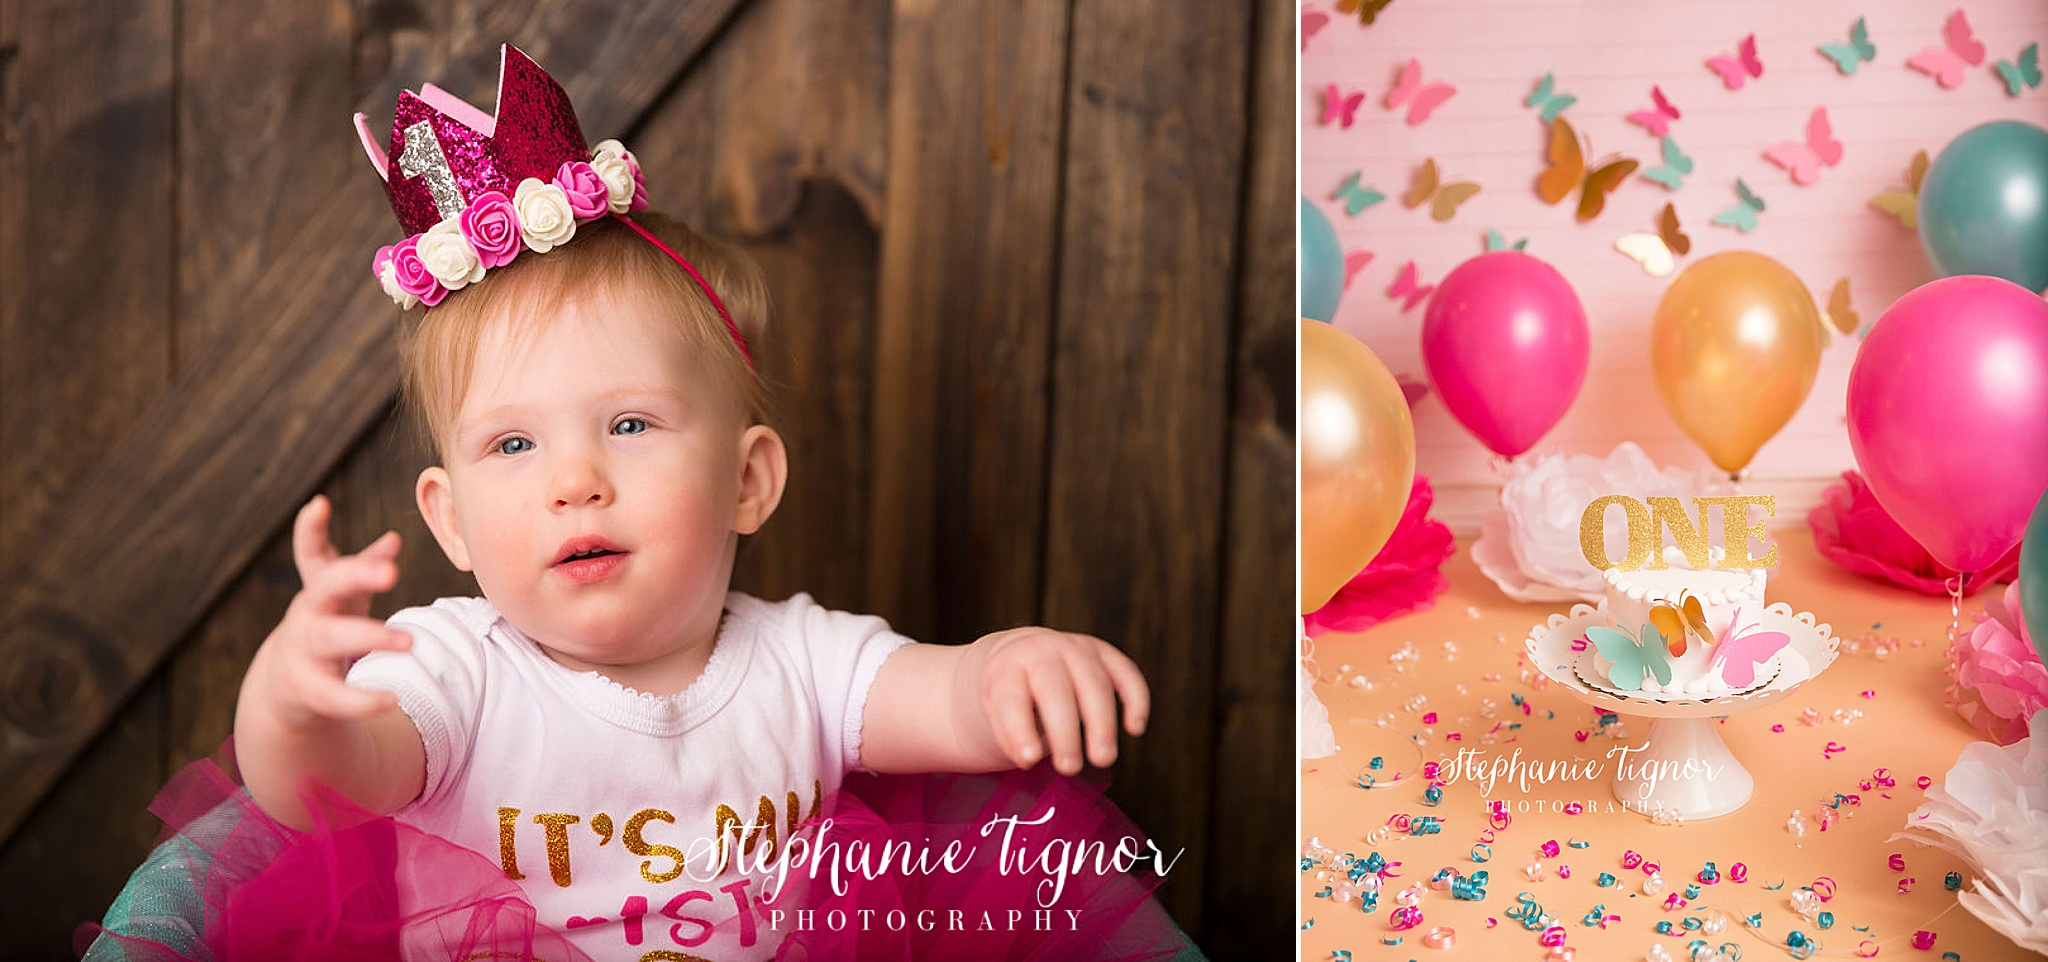 Stephanie Tignor Photography | Fredericksburg VA Cake Smash Photographer | Warrenton VA Cake Smash Photographer | Stafford VA Cake Smash Photographer | Cake Smash Photographer , butterfly cake smash, spring cake smash, pink cake smash